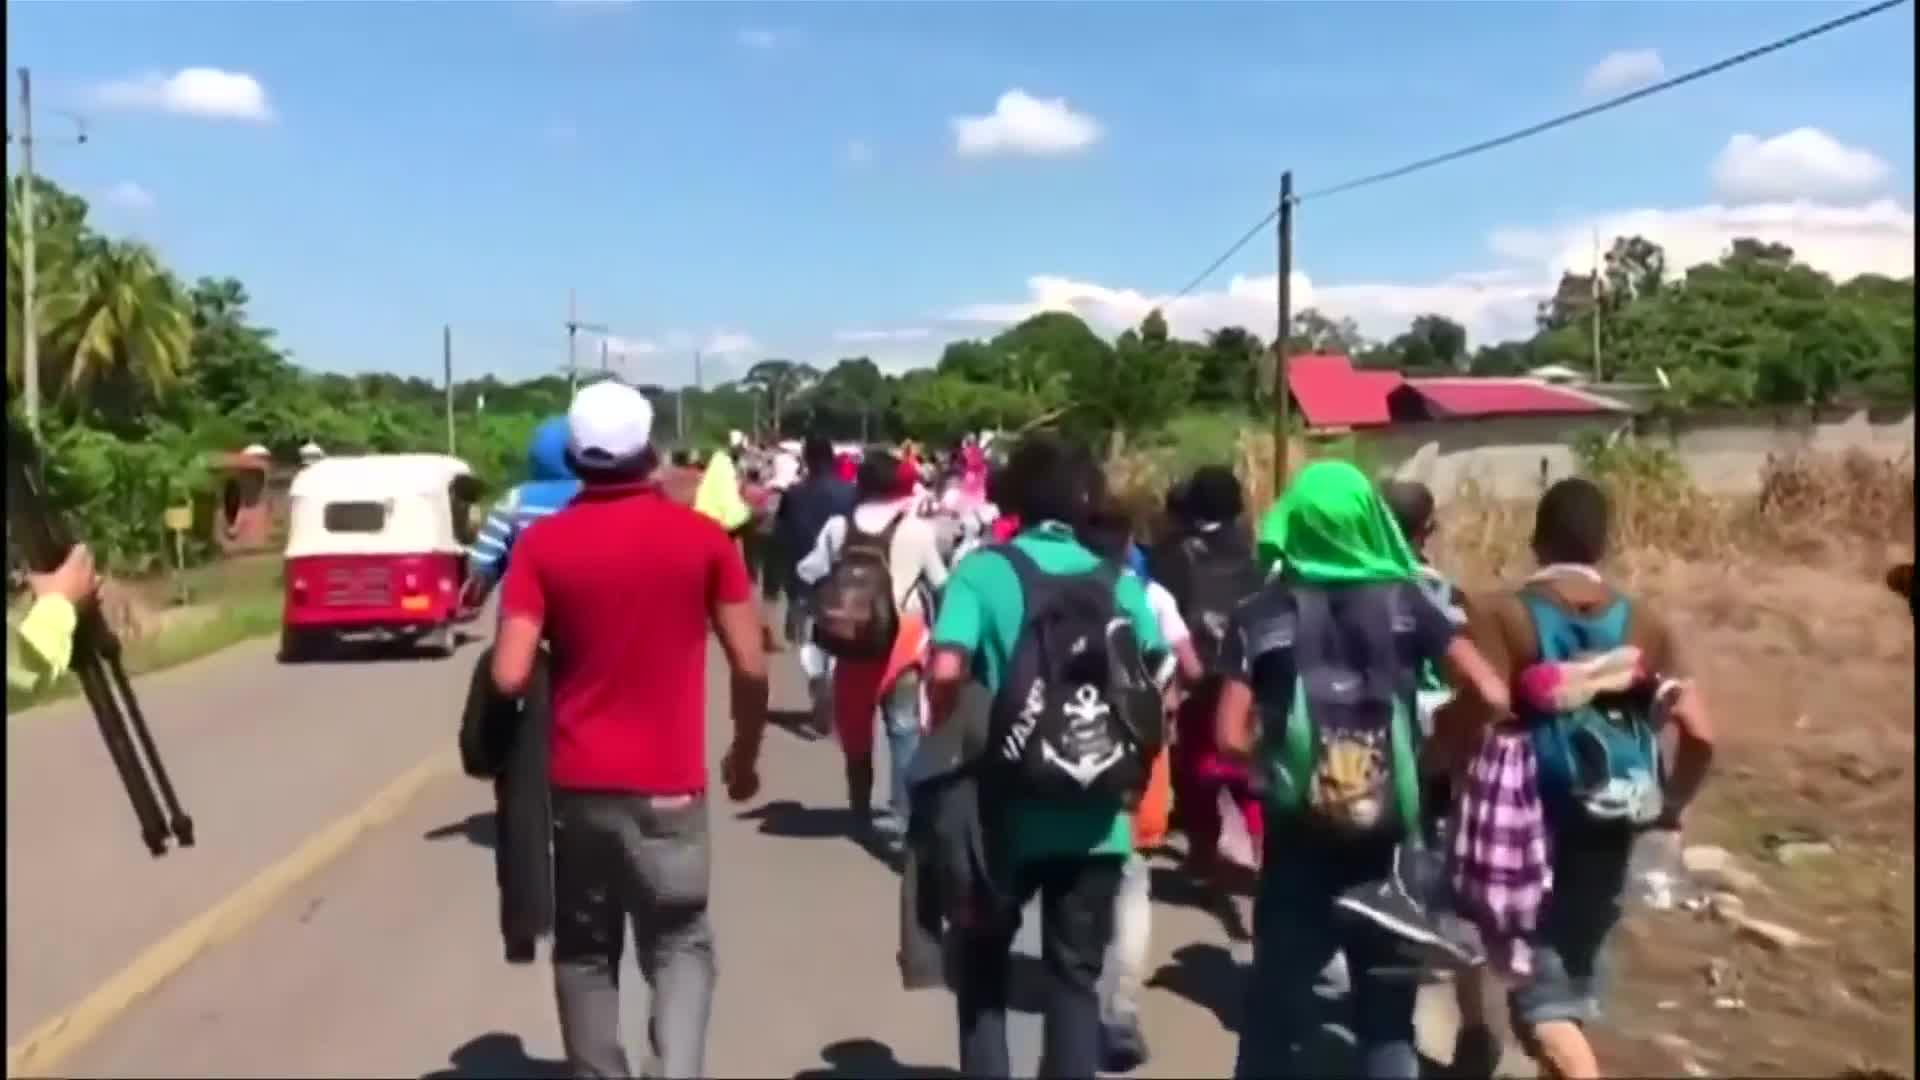 Politics - Honduran Caravaners Make It Into Southern Mexico